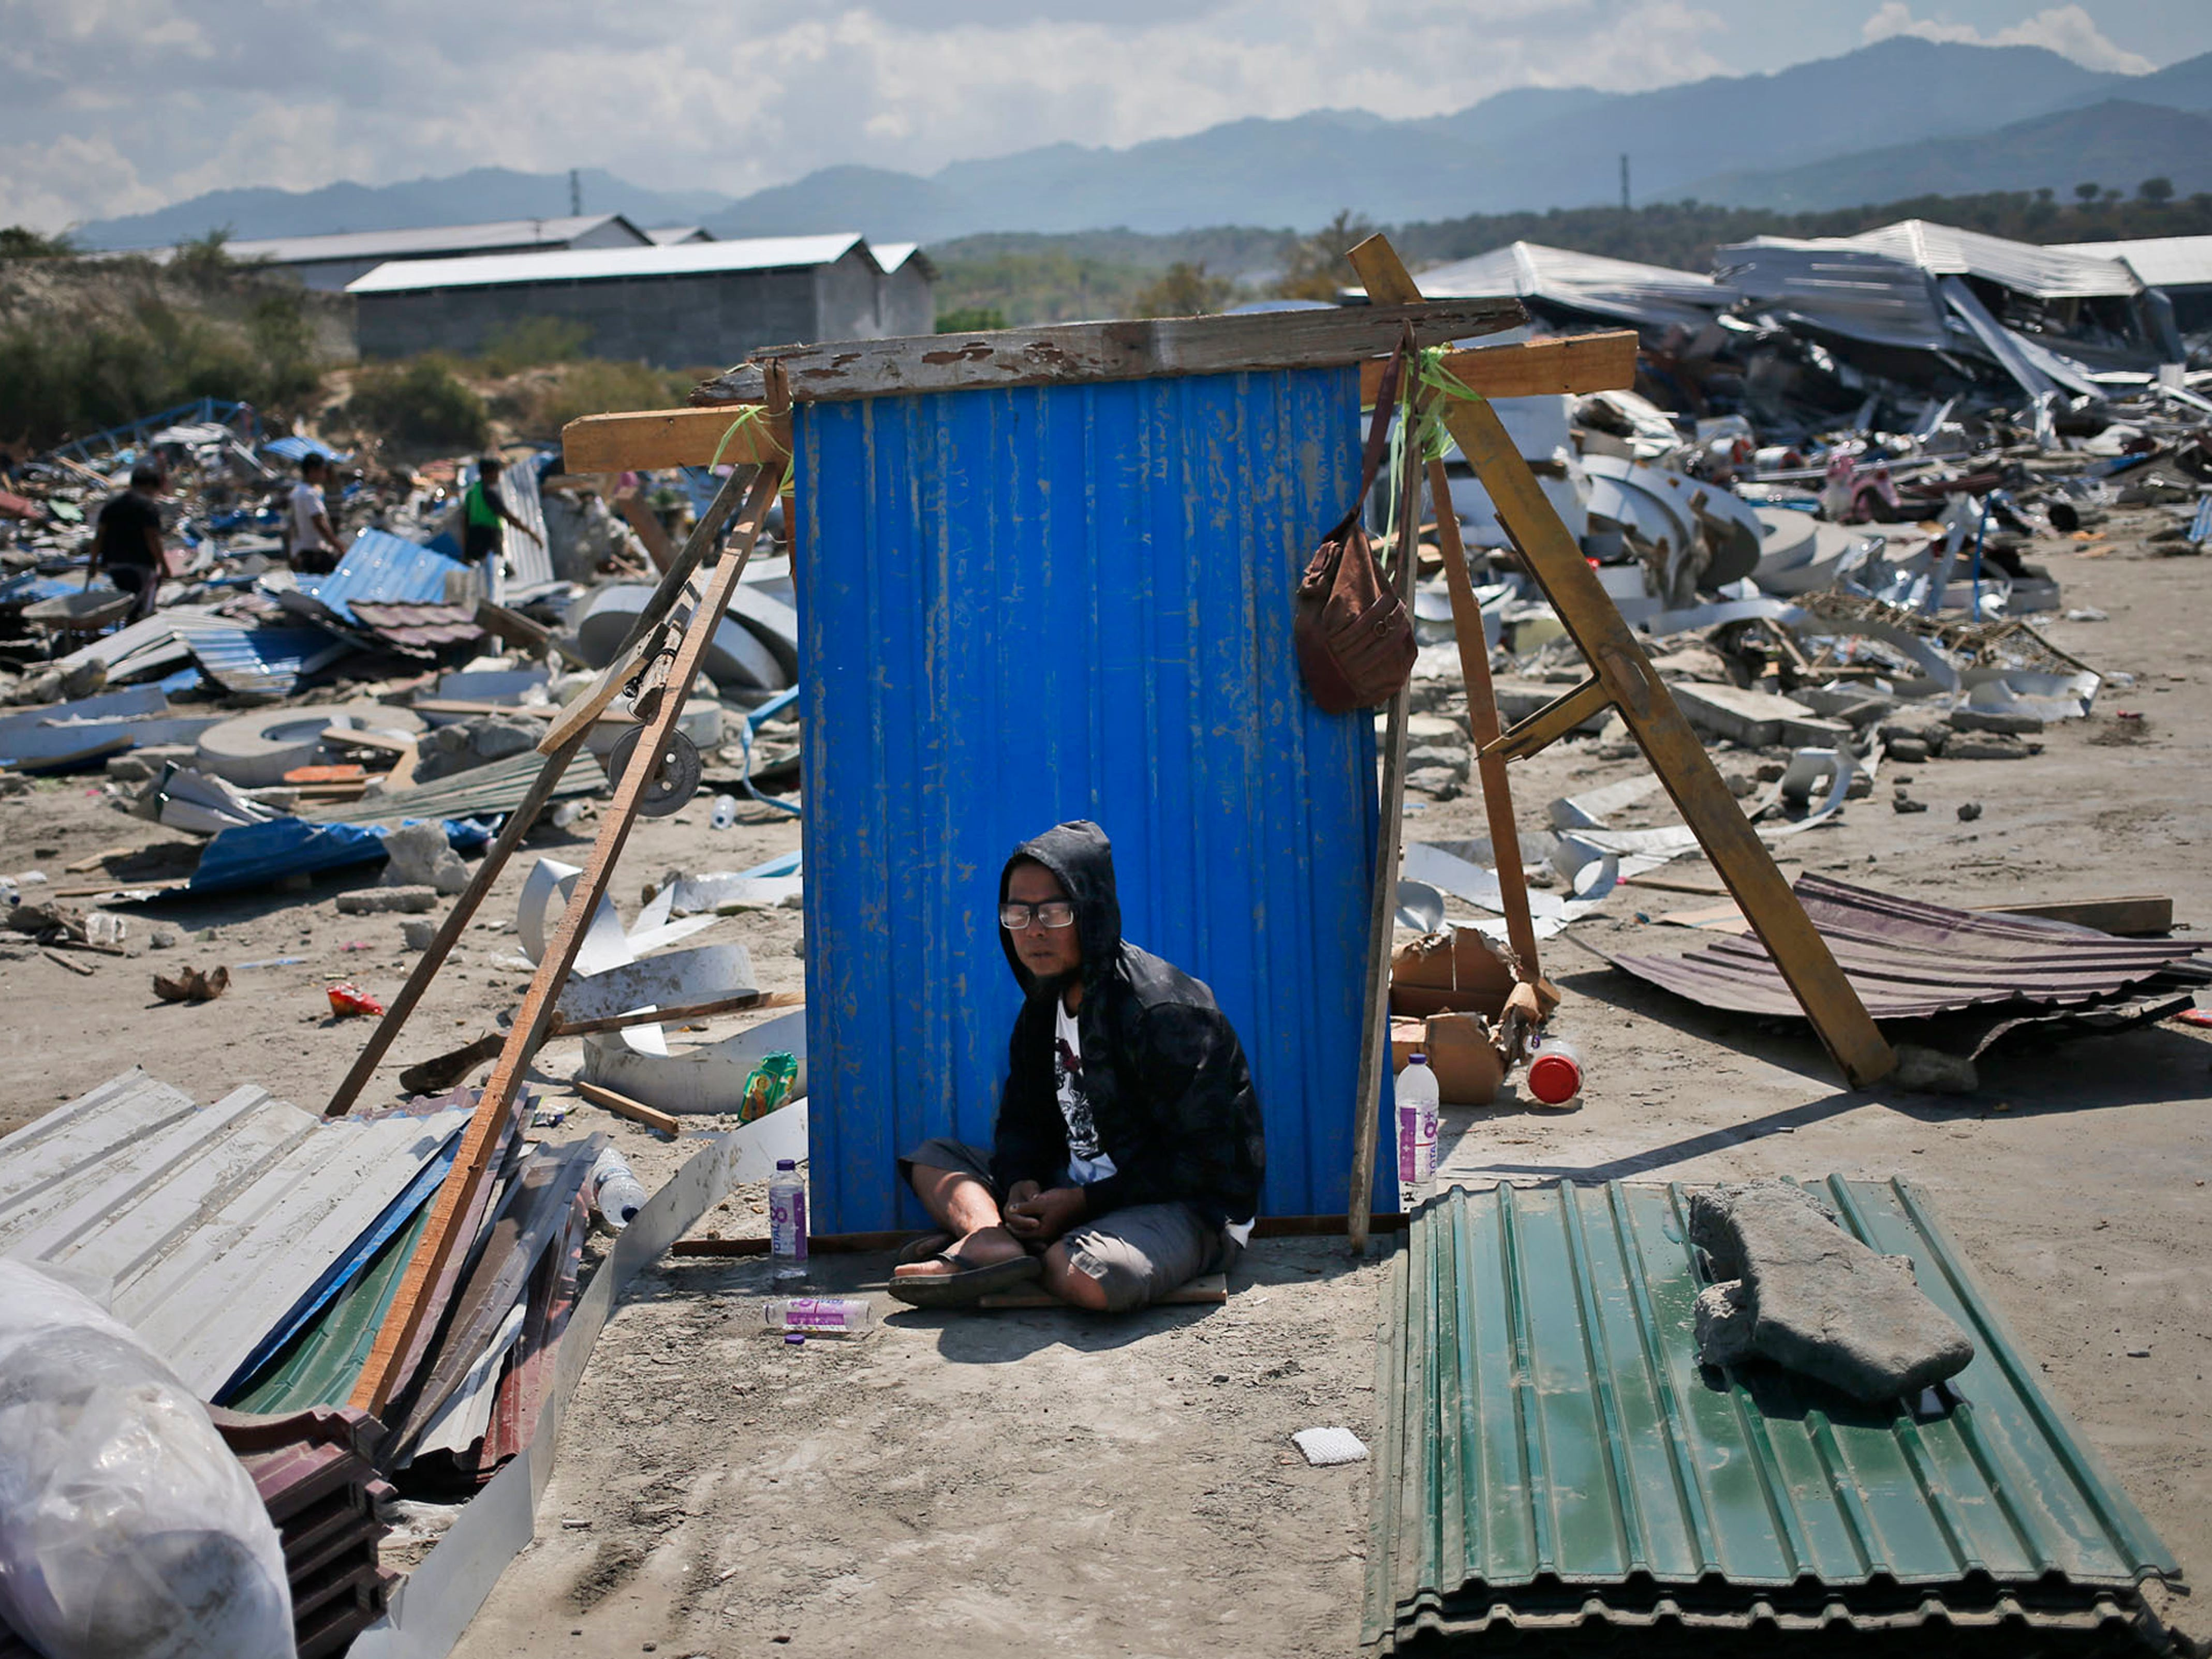 A man sits in the shade of a sheet of a corrugated tin surrounded by earthquake debris in Palu, Central Sulawesi, Indonesia. Oct. 3, 2018.